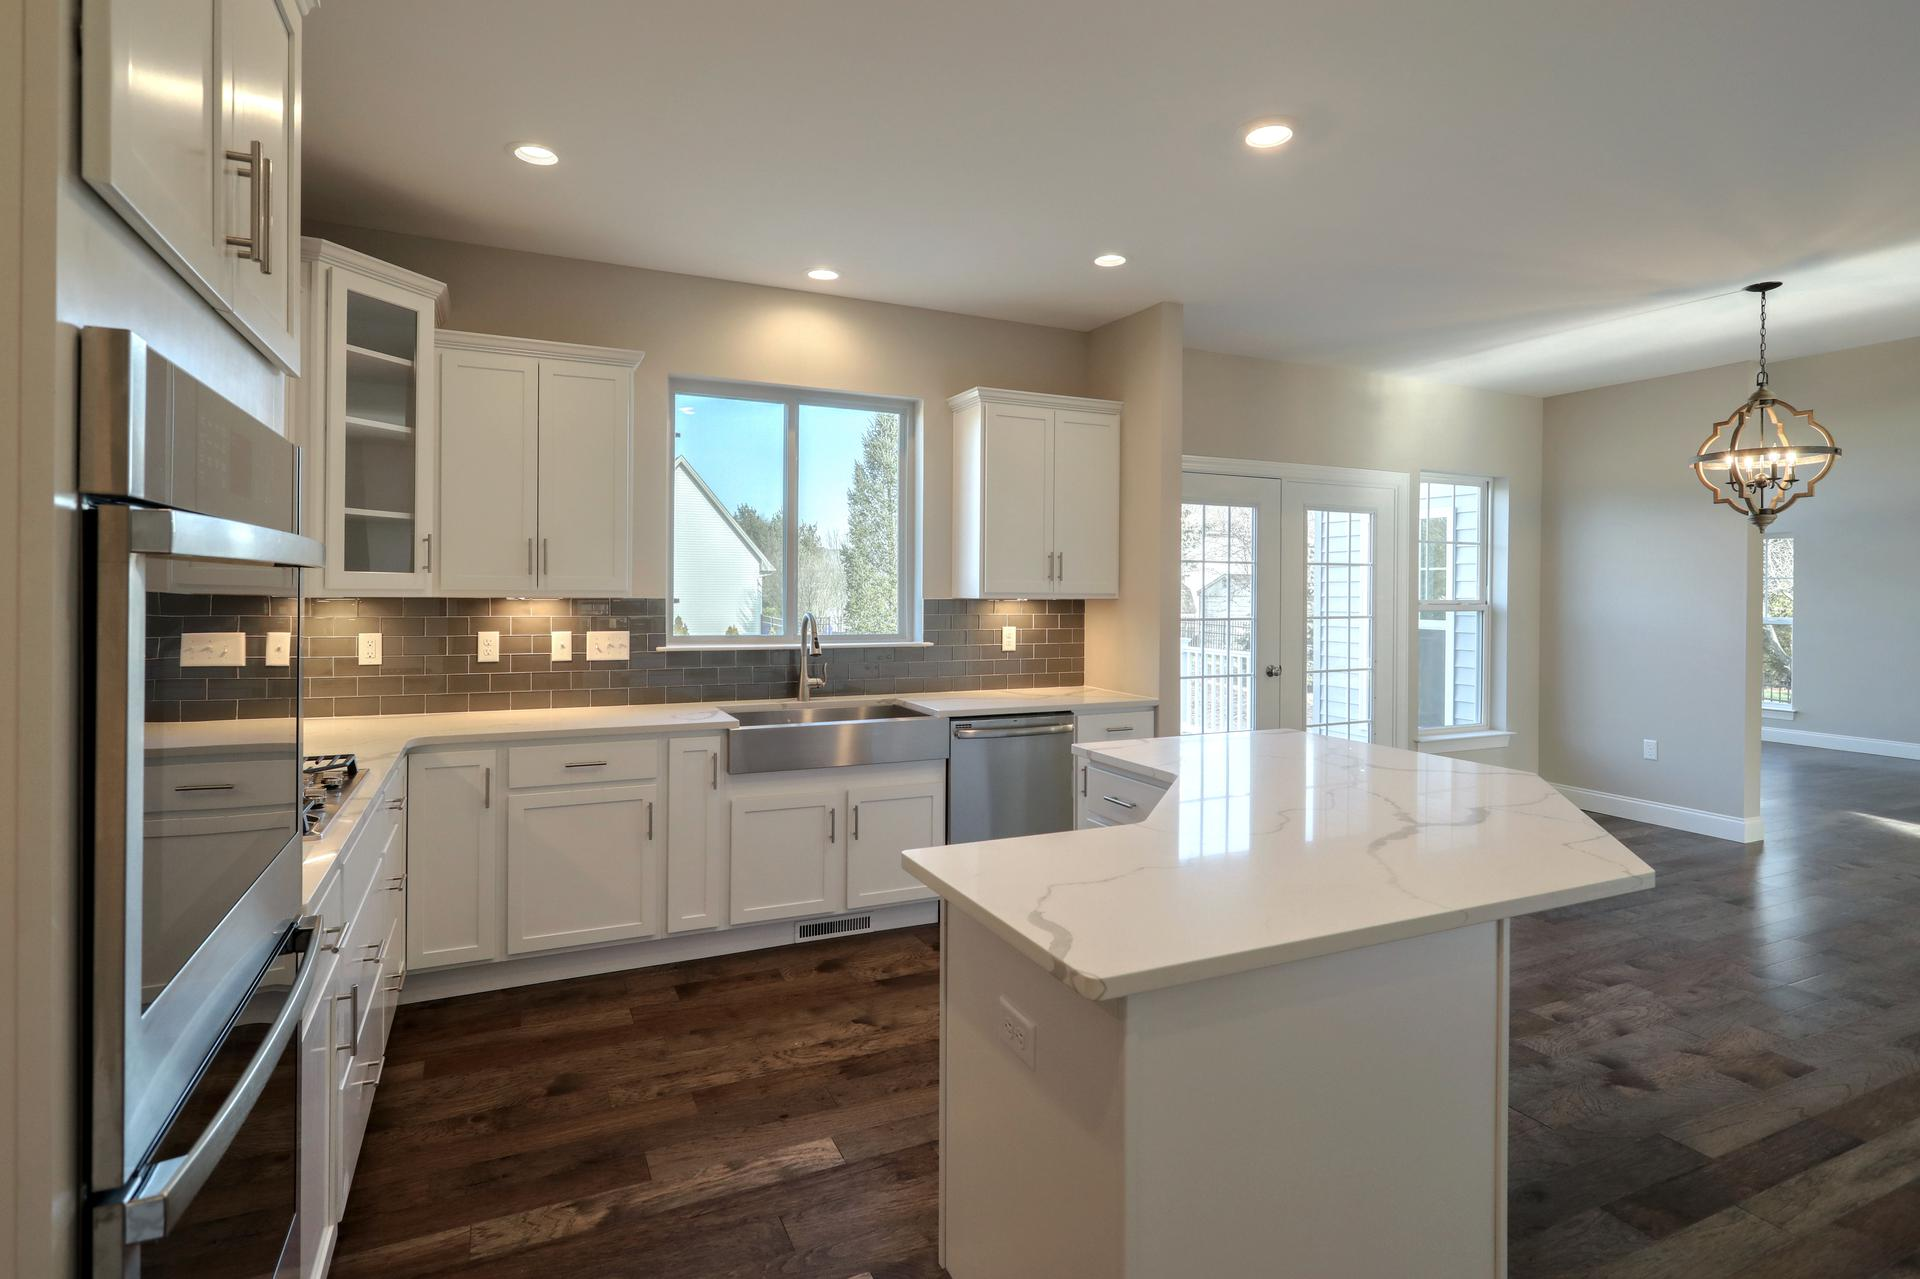 4br New Home in Mohnton, PA